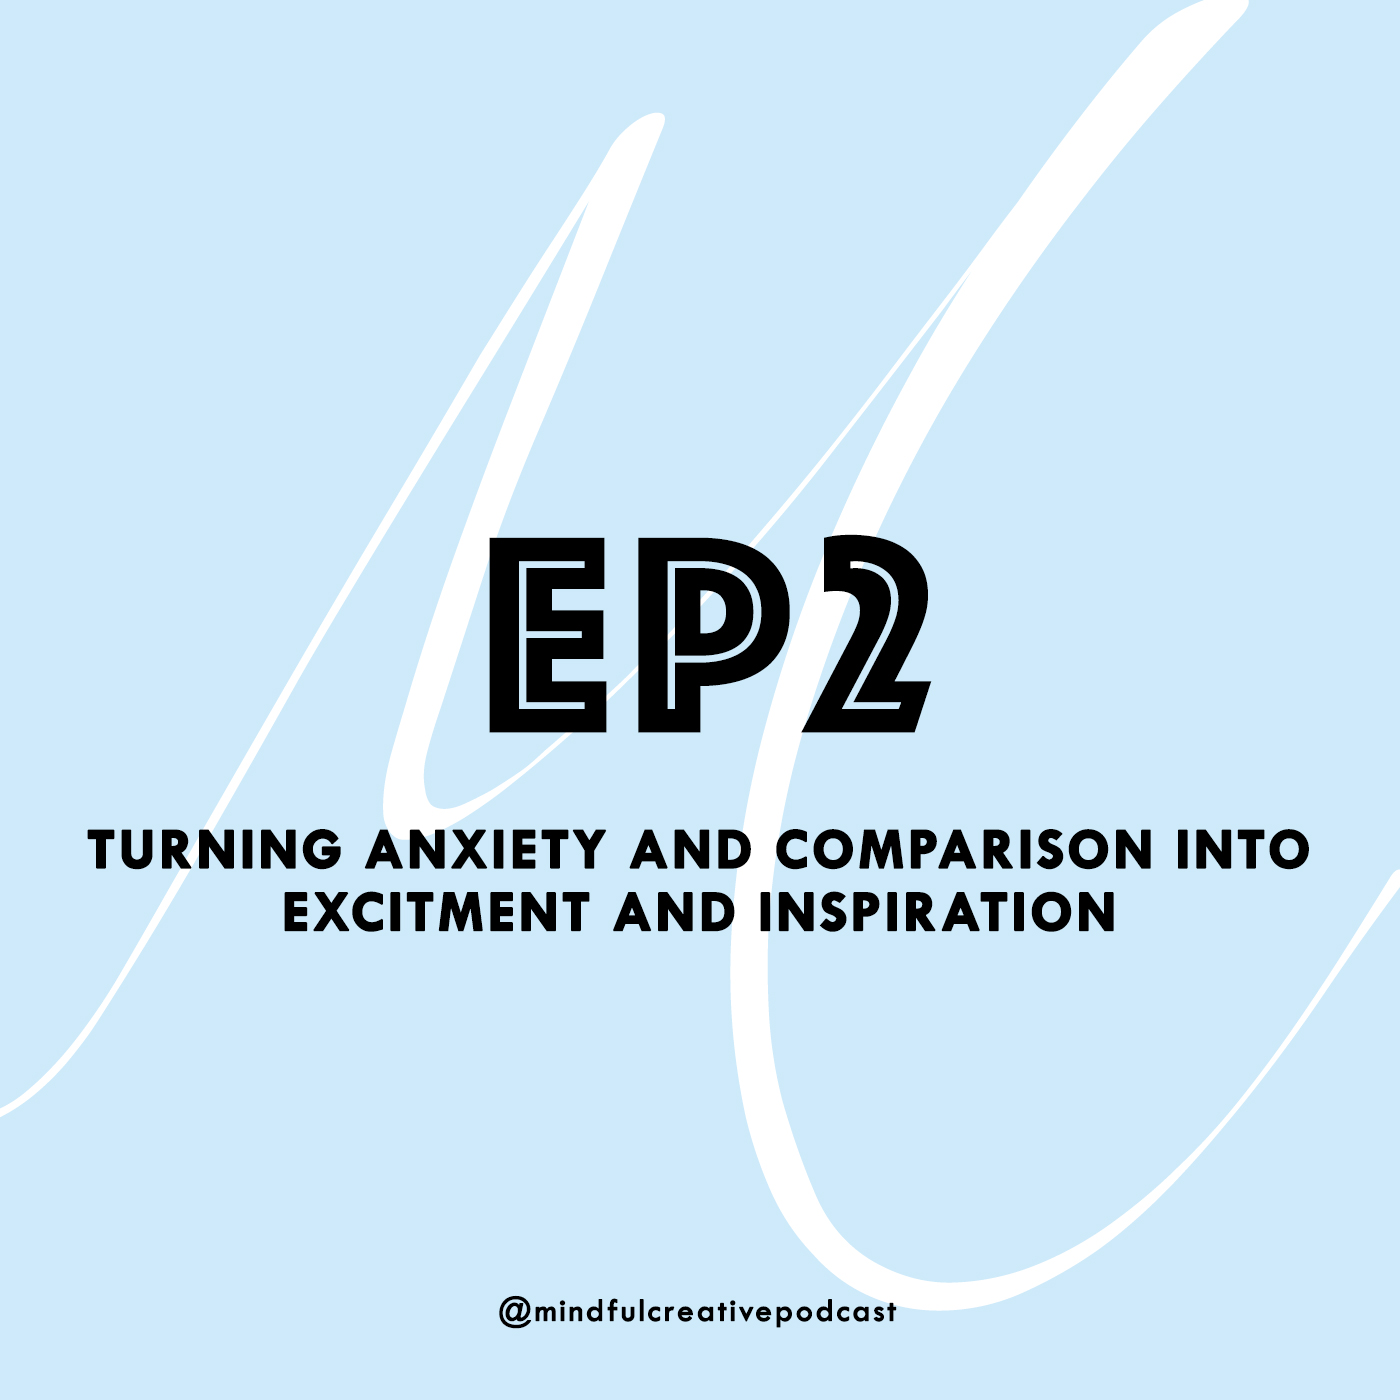 The Mindful Creative Podcast: Episode 2 - Turning Anxiety and Comparison into Excitement and Inspiration.